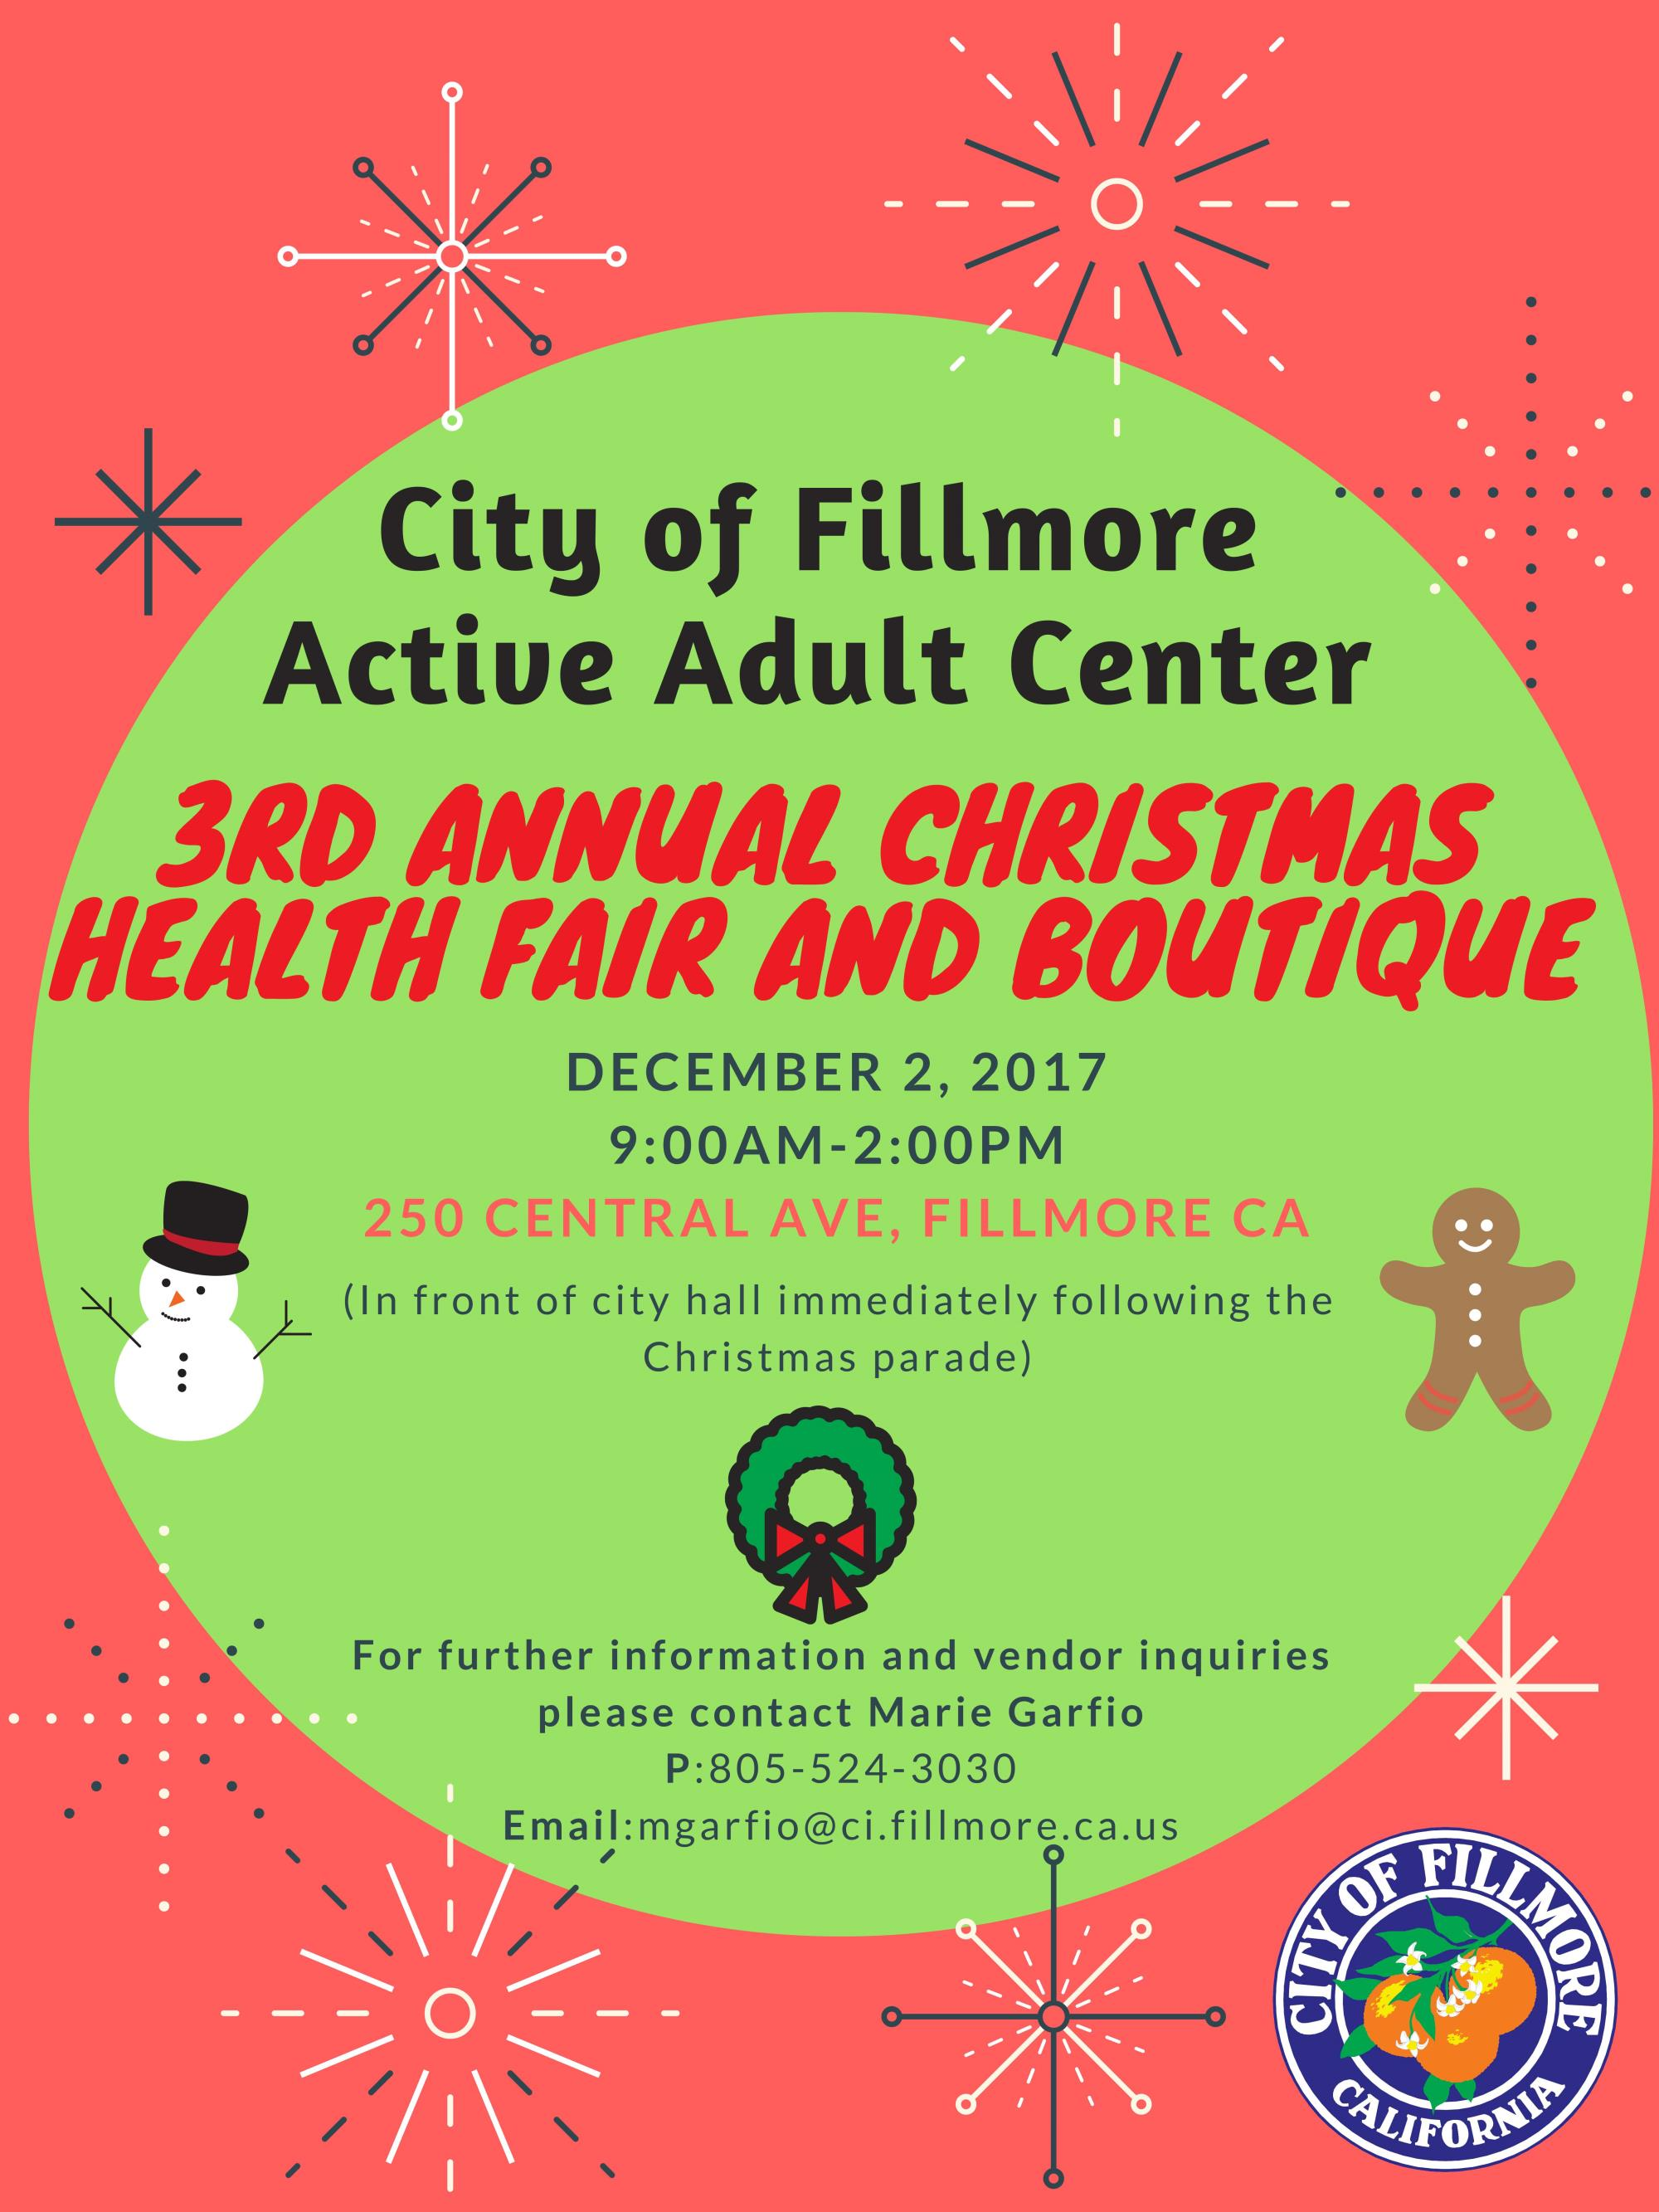 City of Fillmore Boutique 2017